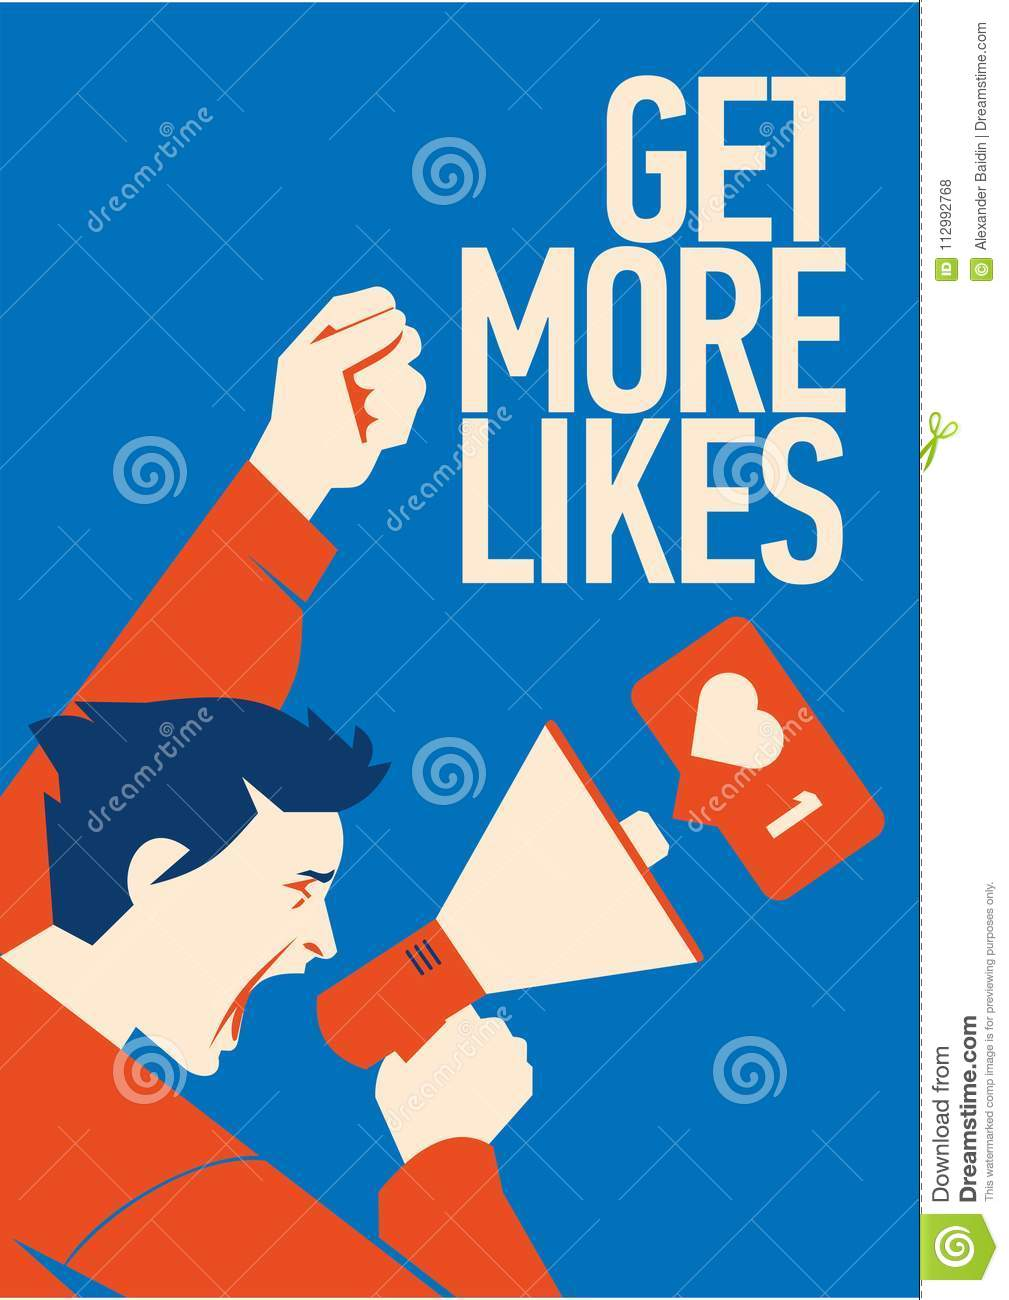 Get more likes Announcement. Man Holding Megaphone With Speech Bubble.